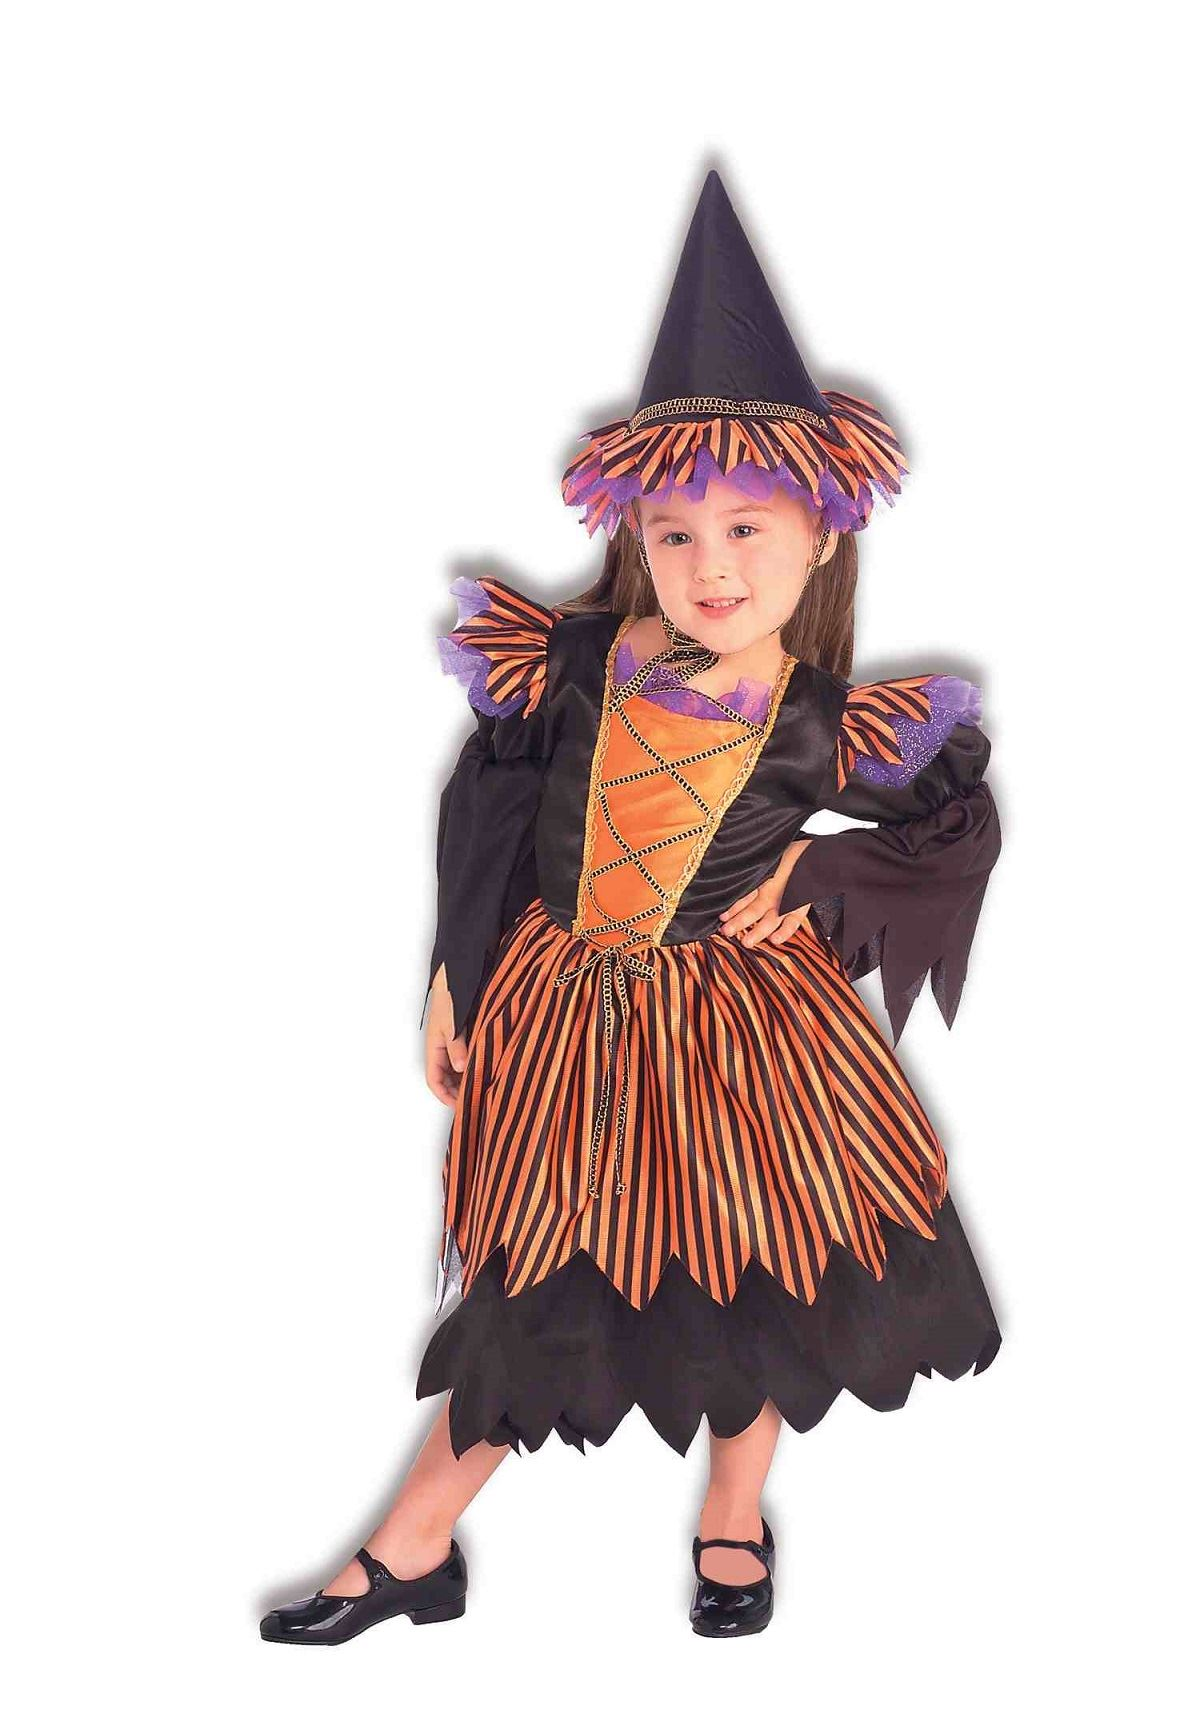 Kids Storybook Witch Girls Costume | $26.99 | The Costume Land